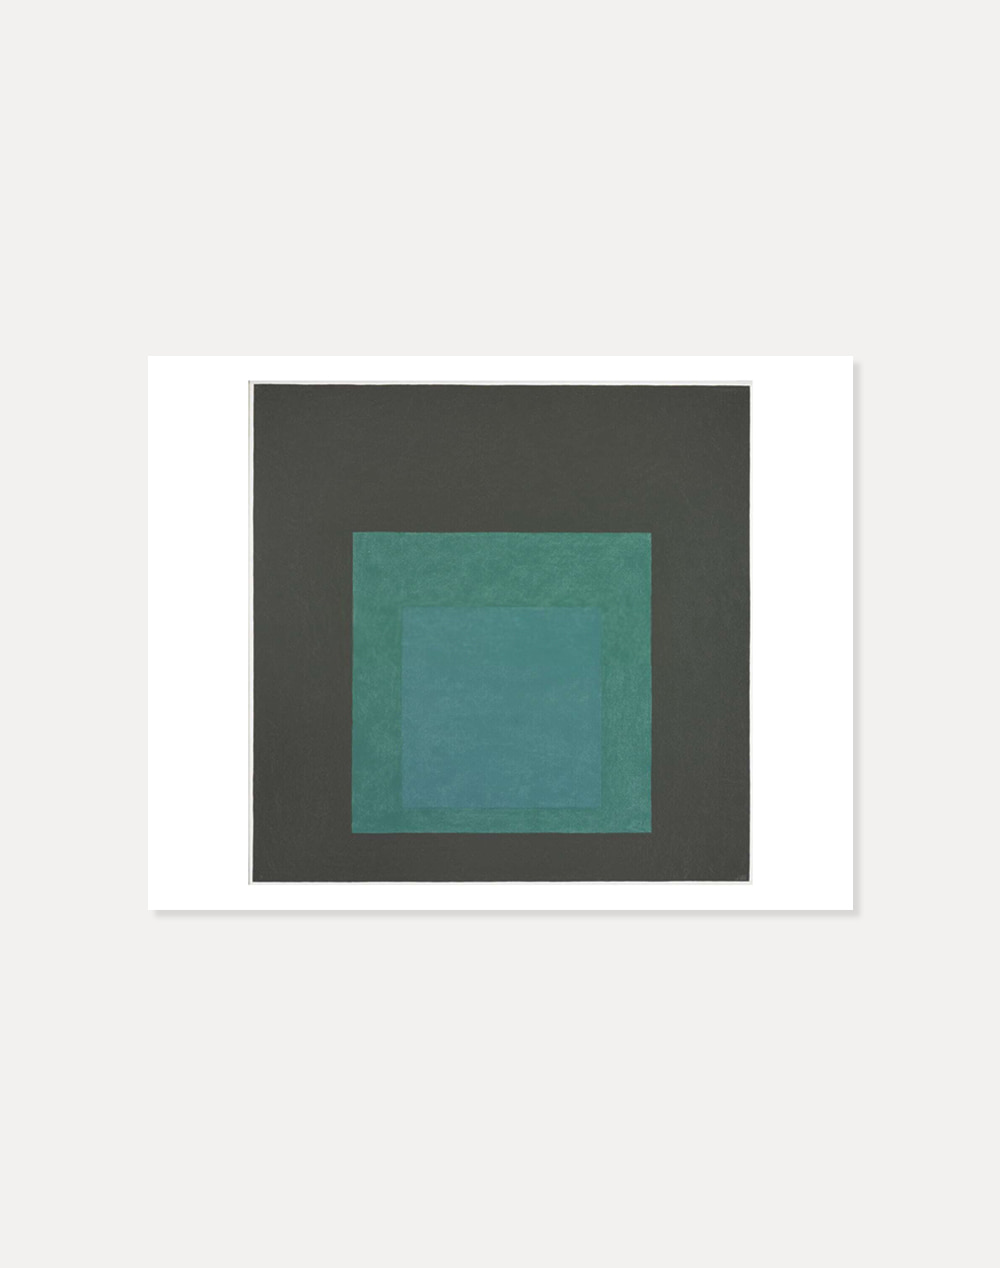 [죠세프 알베르스] Josef Albers —  Study for Homage to the Square: Dark Gray 40.5 x 51 cm